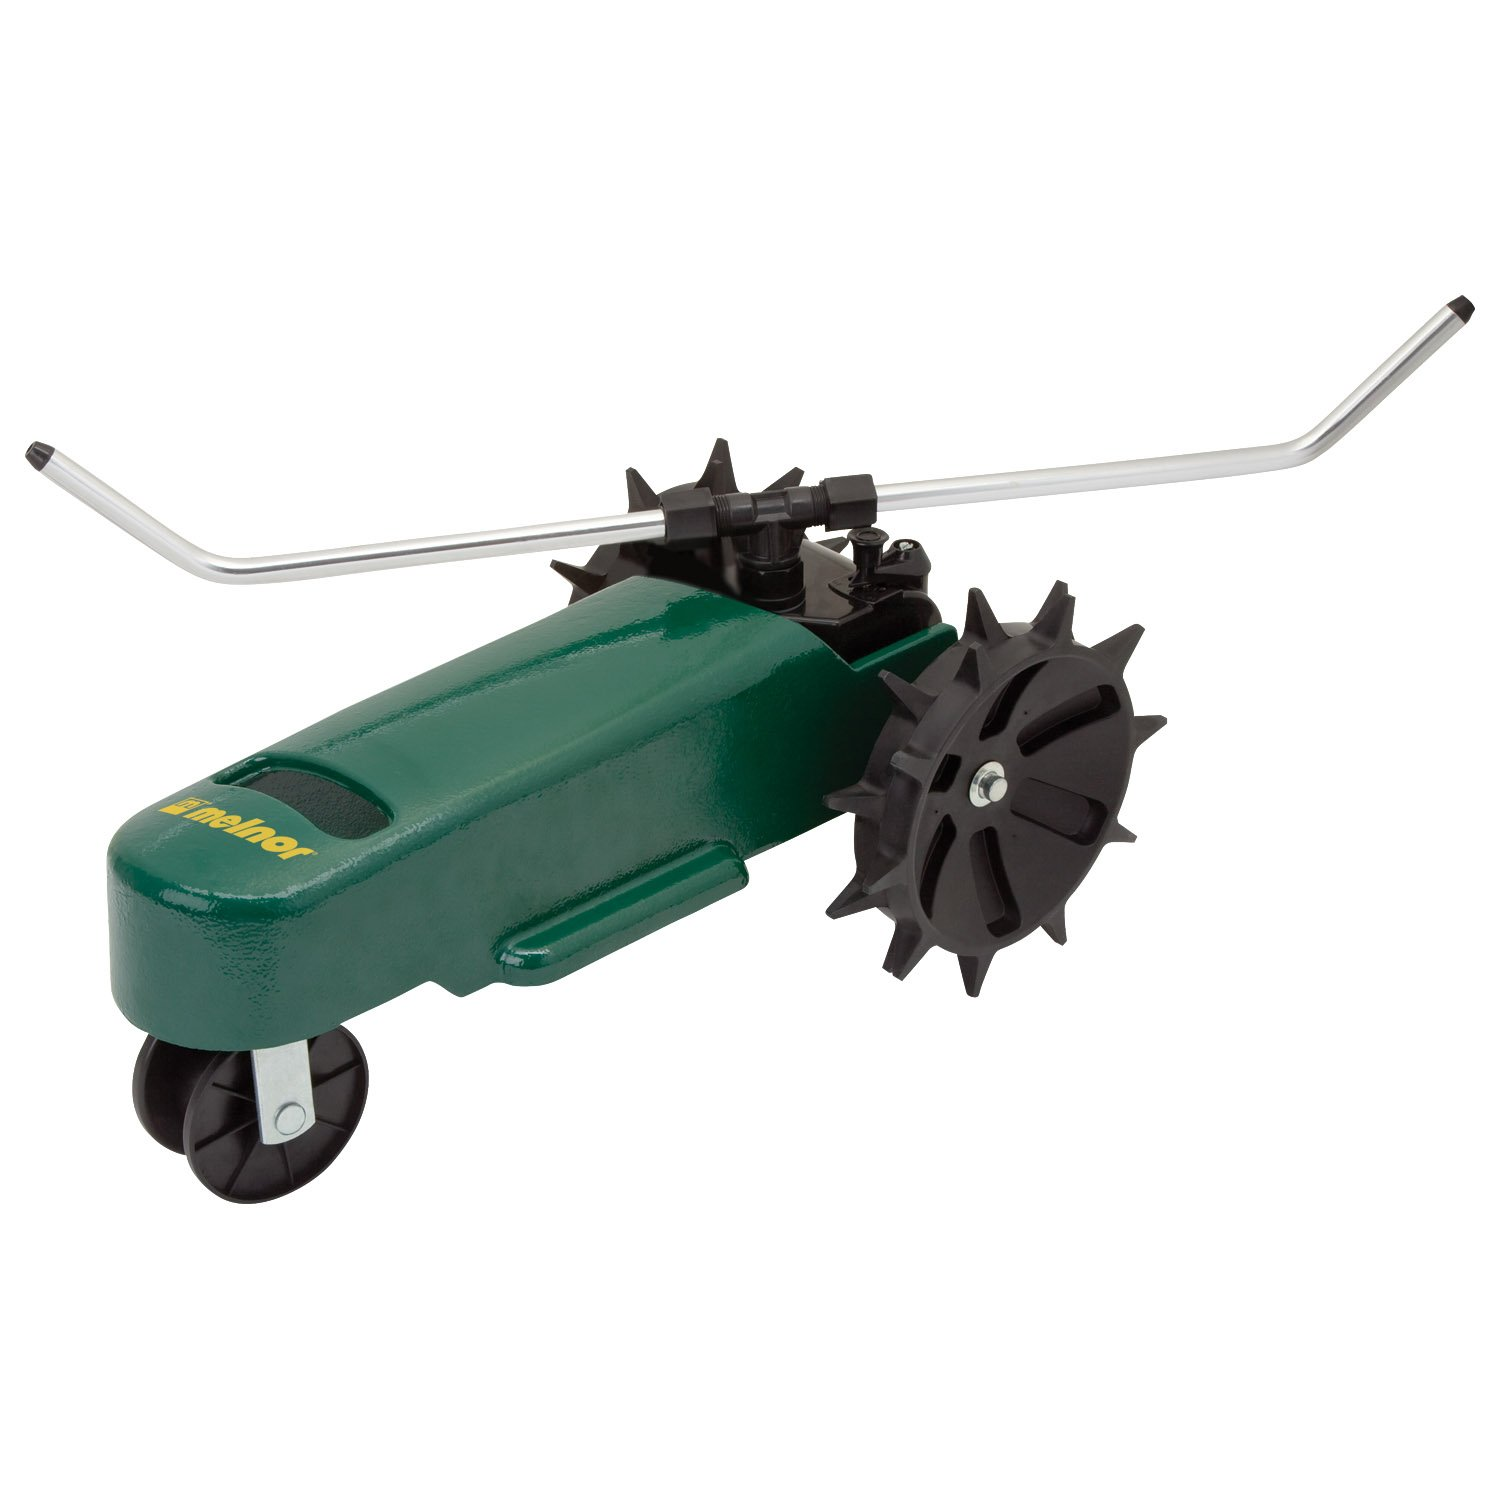 Melnor's Lawn Rescue Traveling Sprinkler, Model# 4500